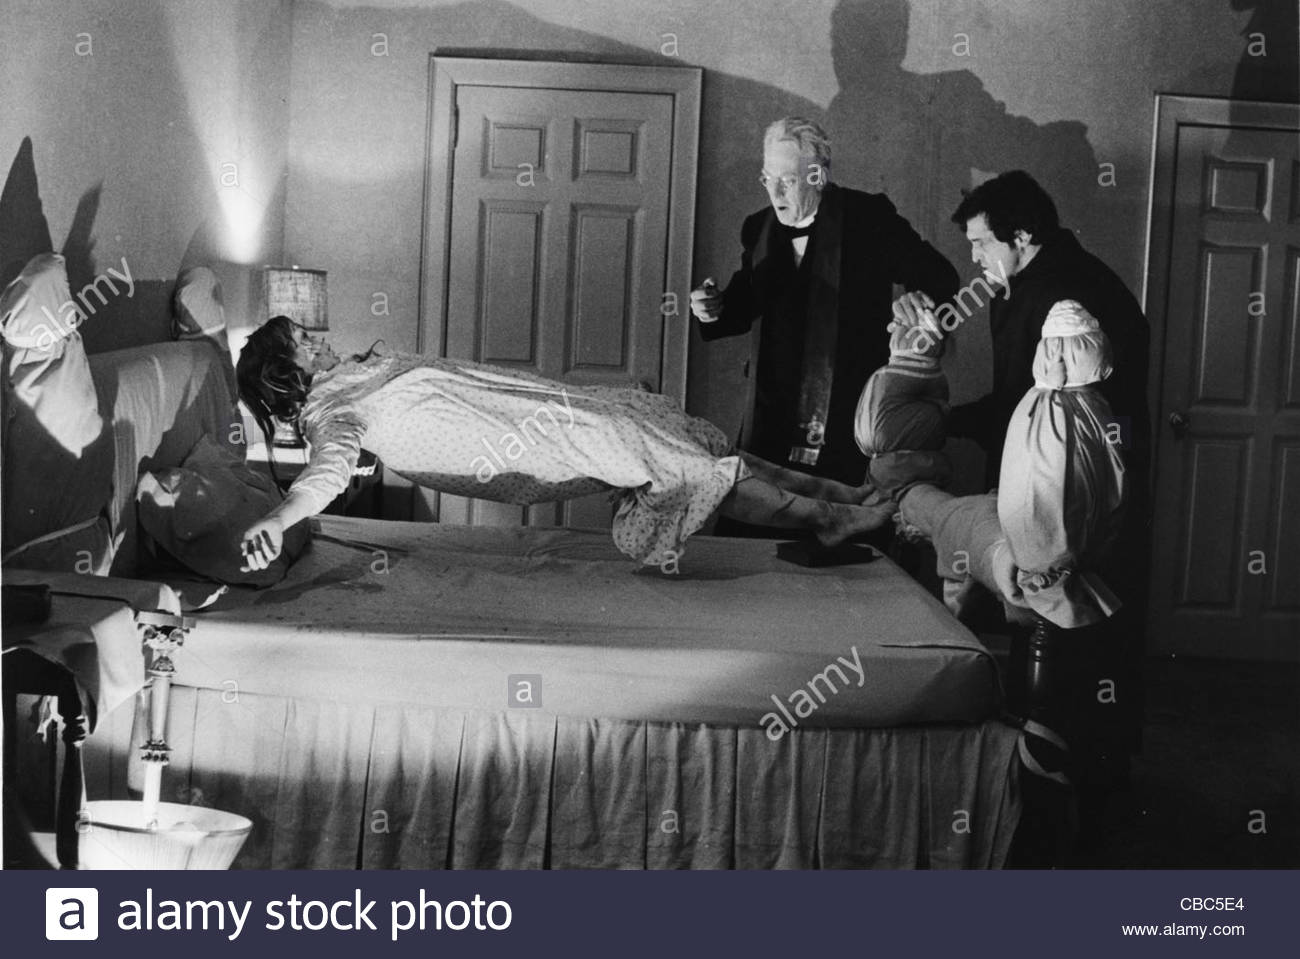 "Linda Blair, Max von Sydow and Jason Miller in a scene from the 1973 film ""The Exorcist"", directed by William Friedkin. Stock Photo"